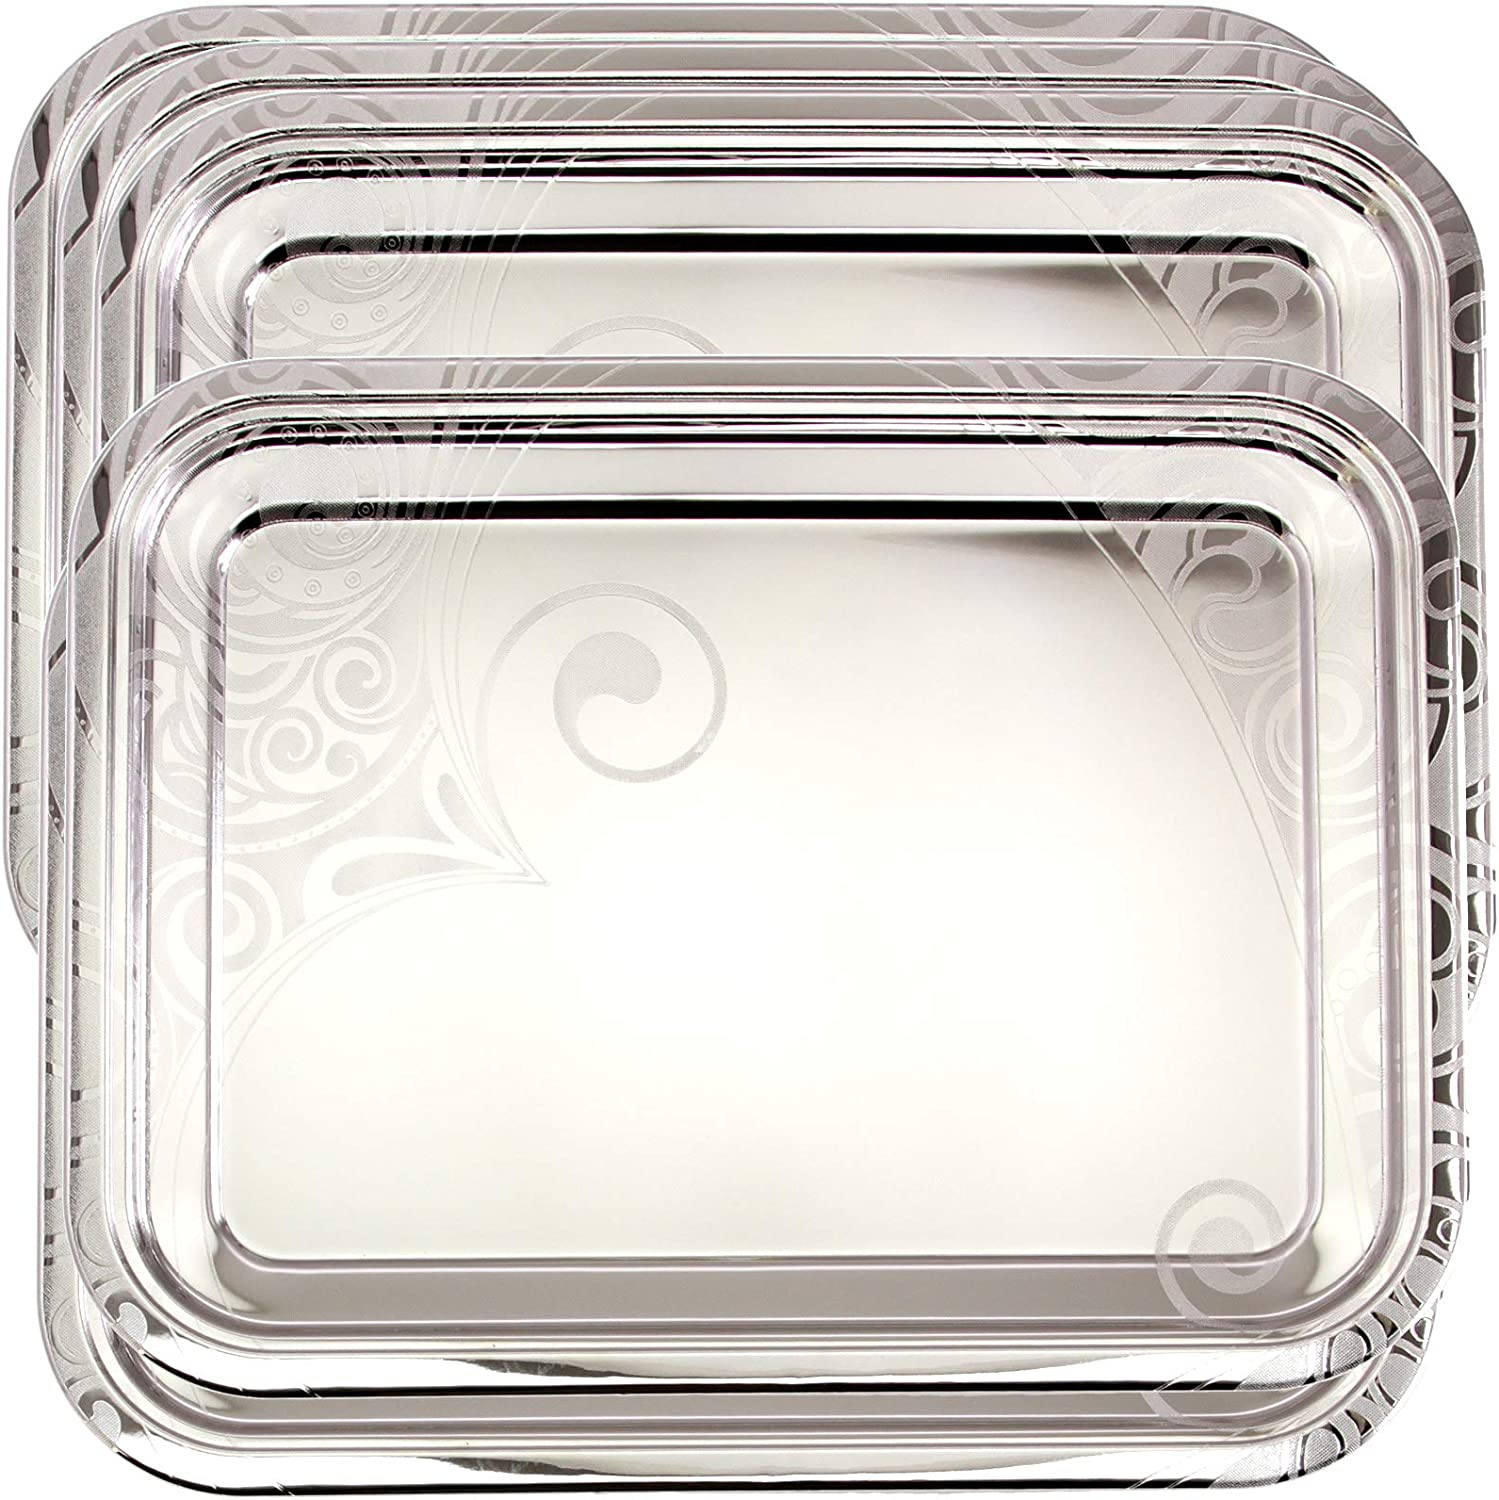 Maro Megastore (Pack of 5) 16.9 inch x 13 inch Oblong Chrome Plated Mirror Silver Serving Tray Stylish Design Floral Engraved Edge Decorative Party Birthday Wedding Buffet Wine Platter Plate CC-866